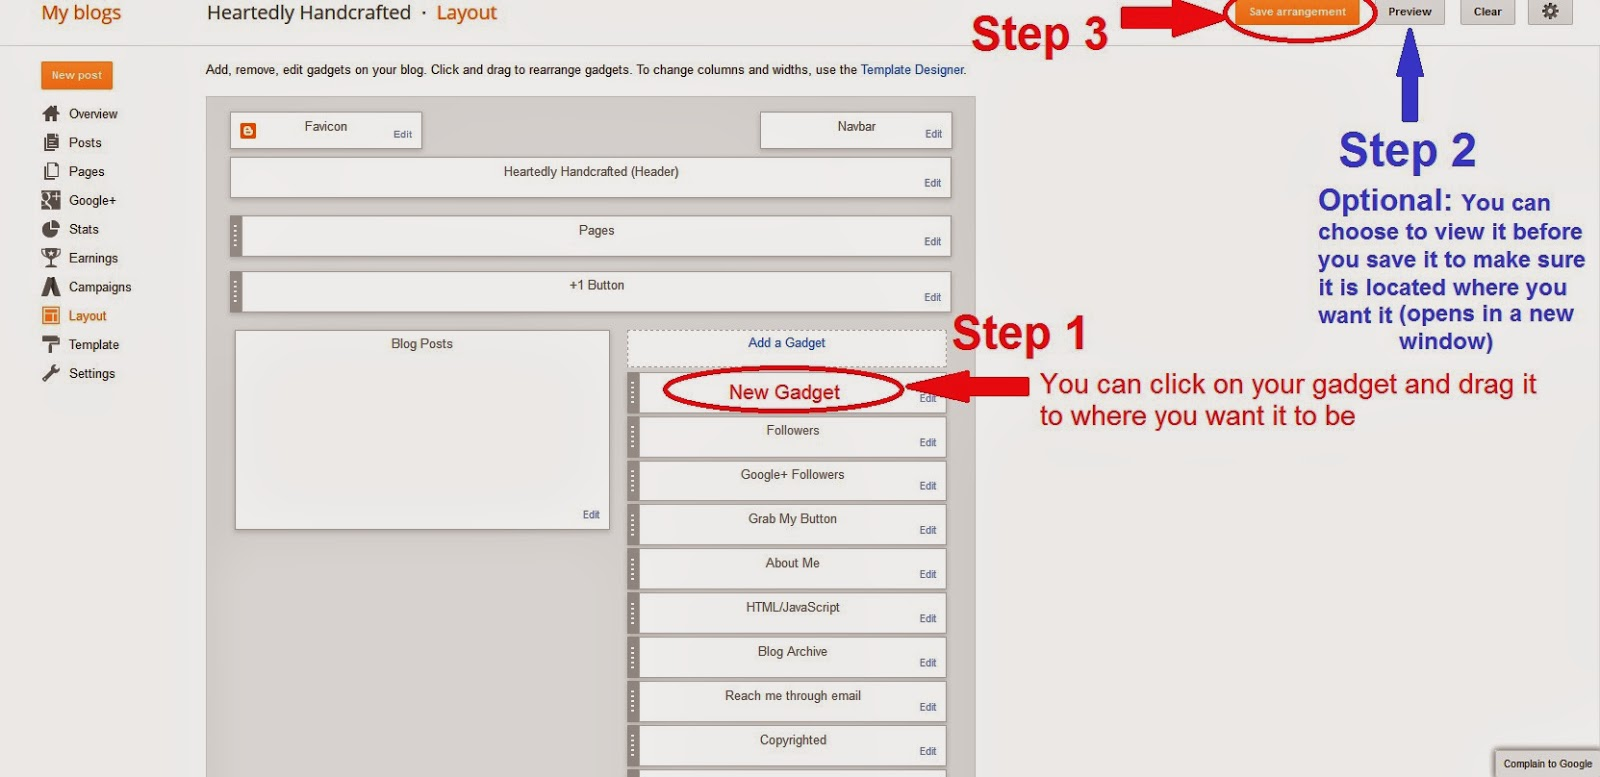 How to Add a Gadget in Blogger